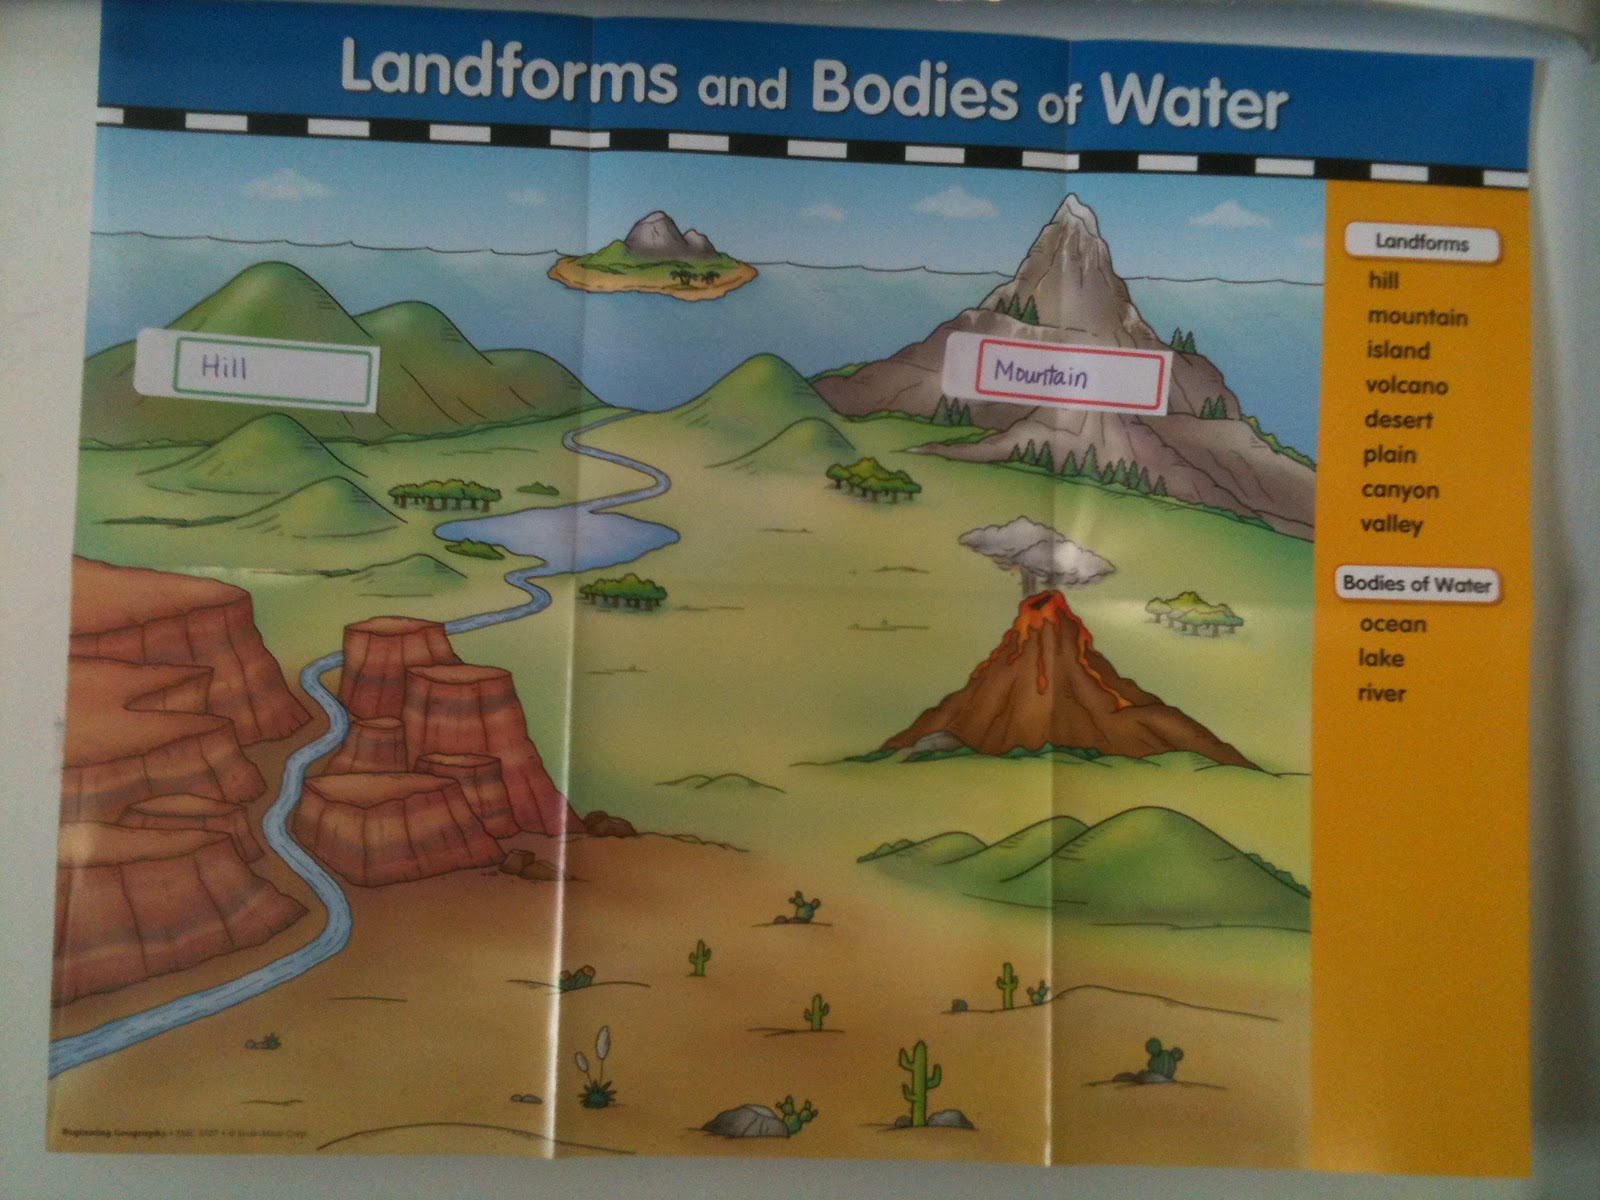 Reaping a HarvestRaising My Three Sons March 2011 – Landforms and Bodies of Water Worksheet